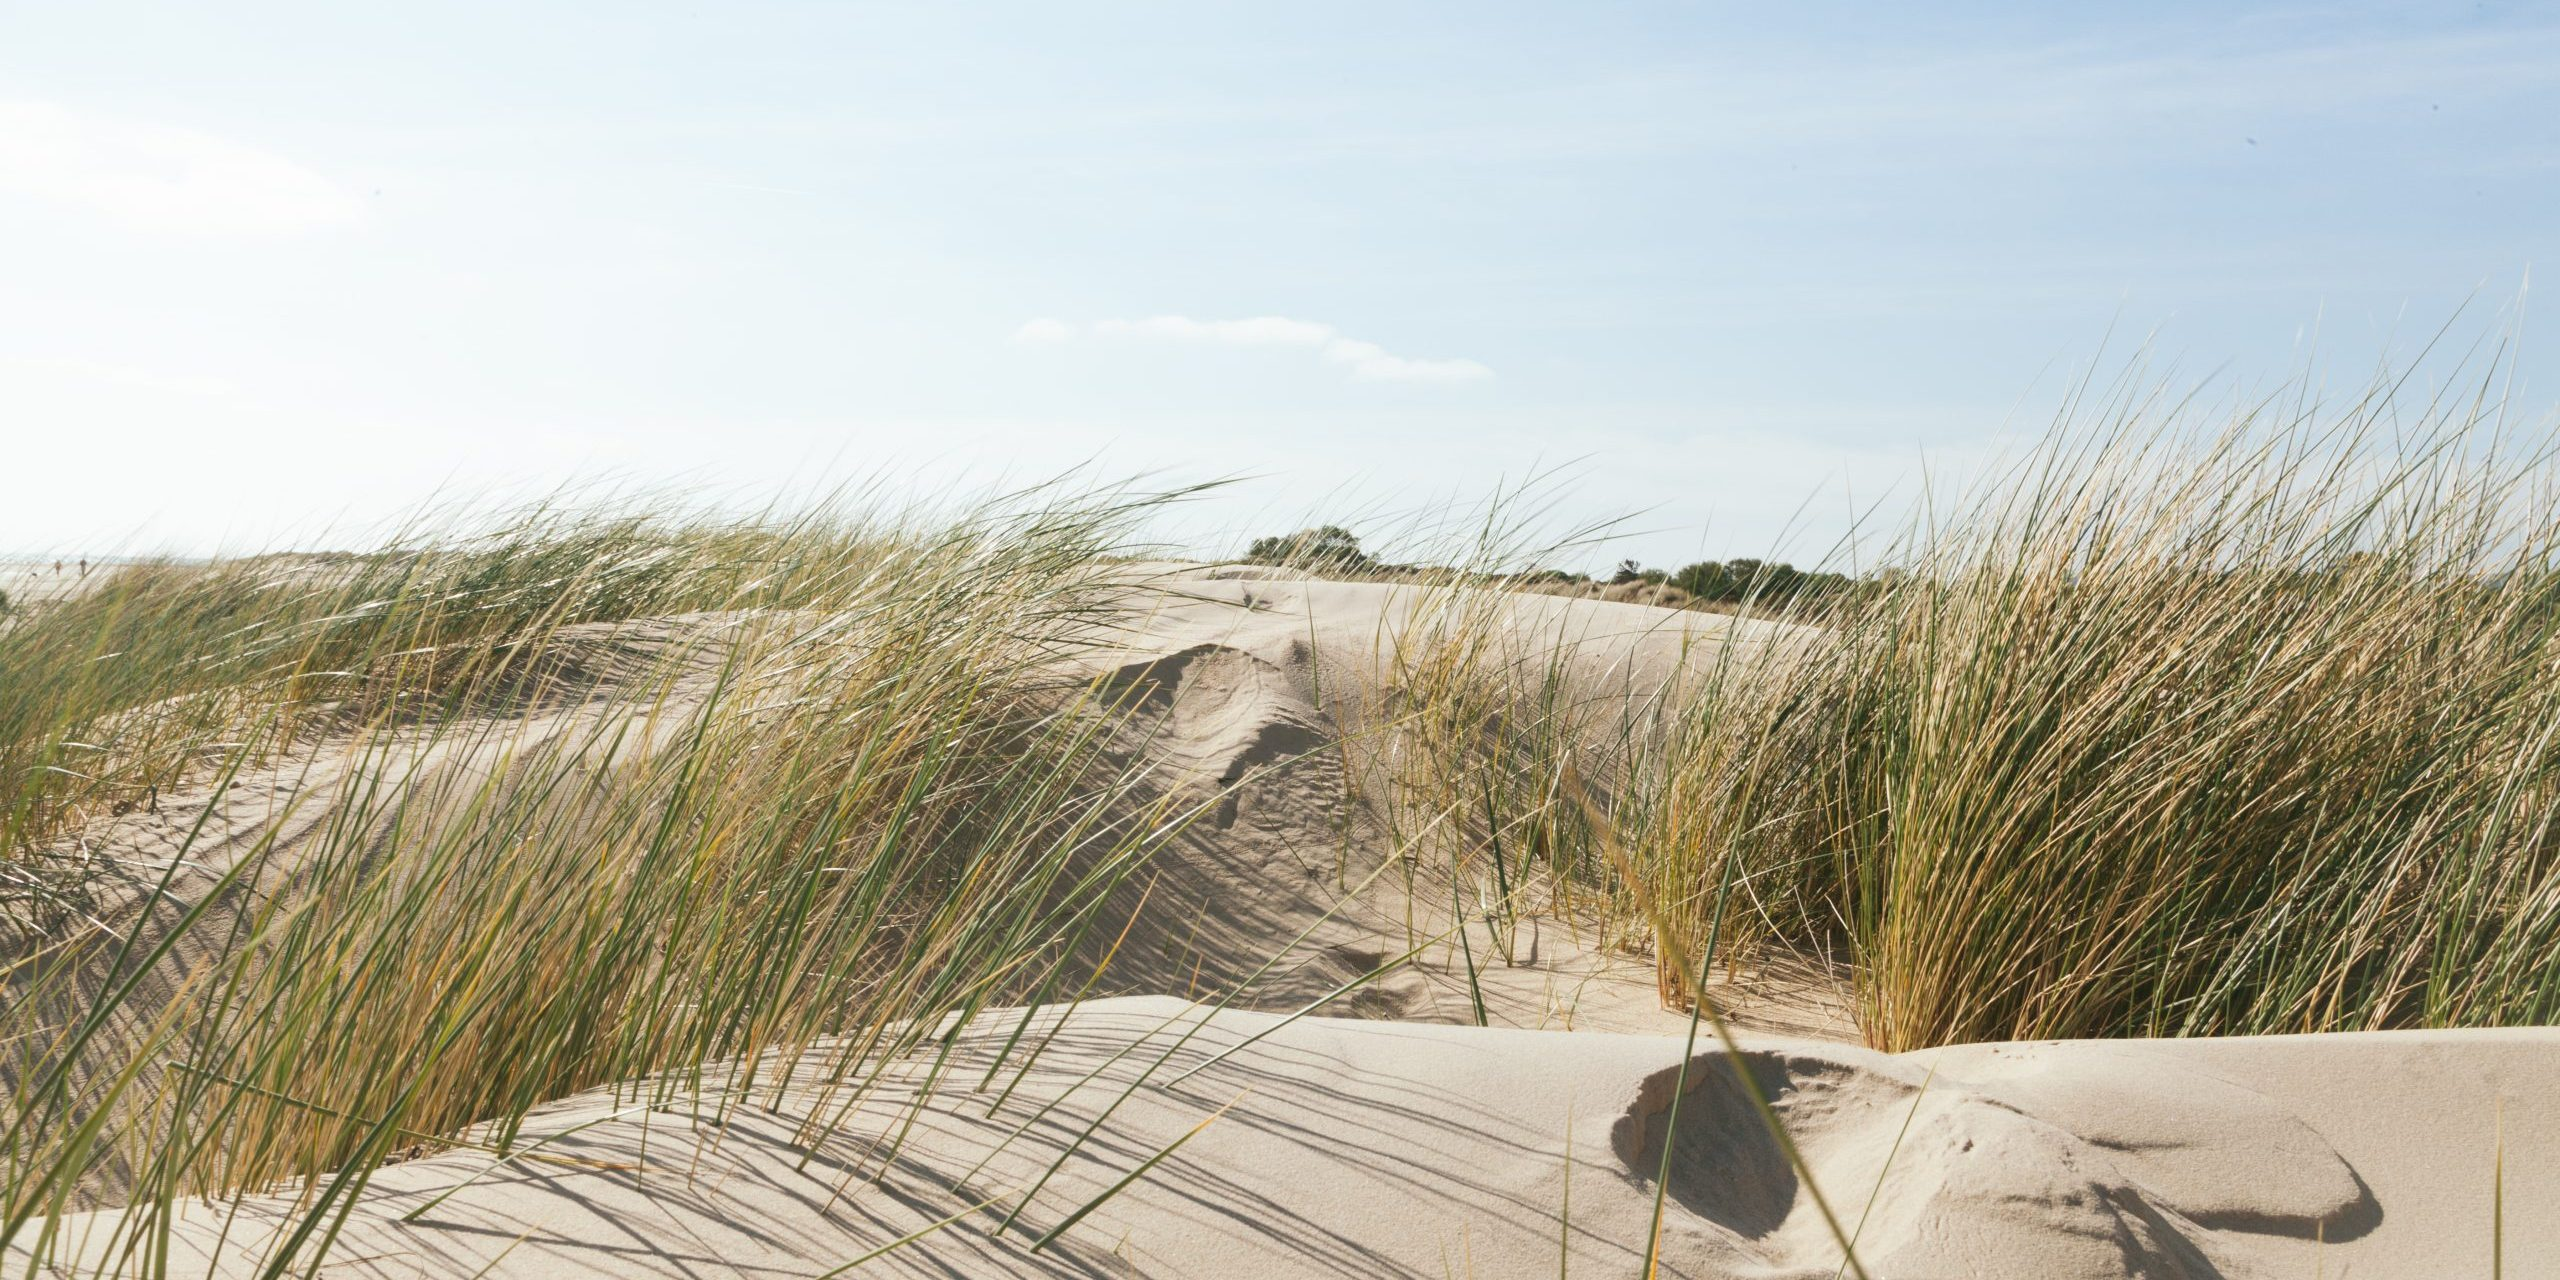 footprints in the tops of small sandy dunes